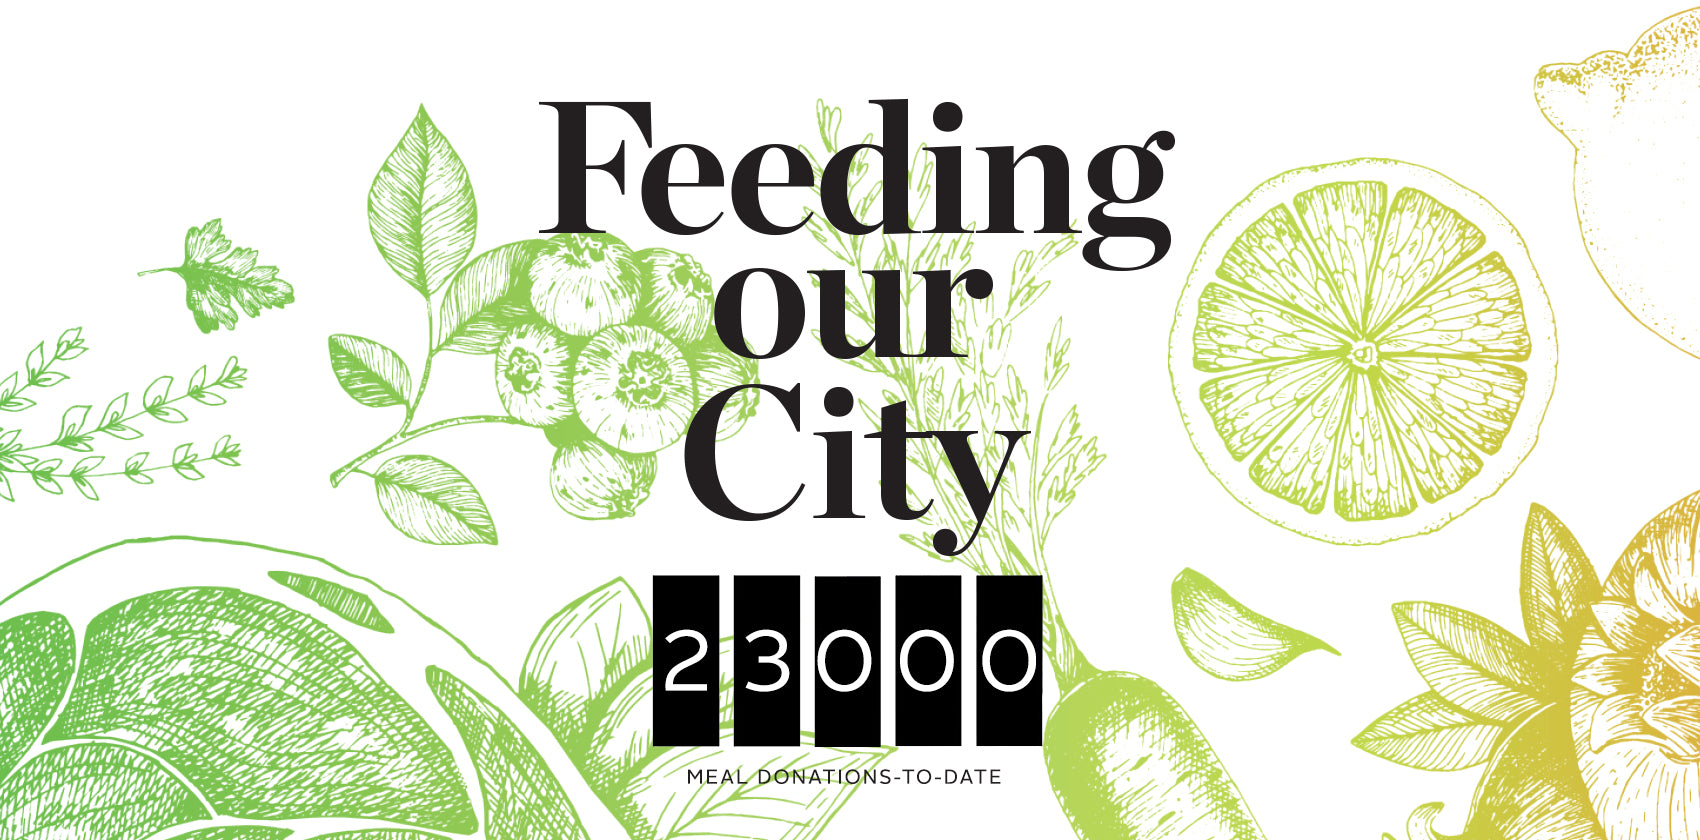 Feeding Our City - 24,000 meals